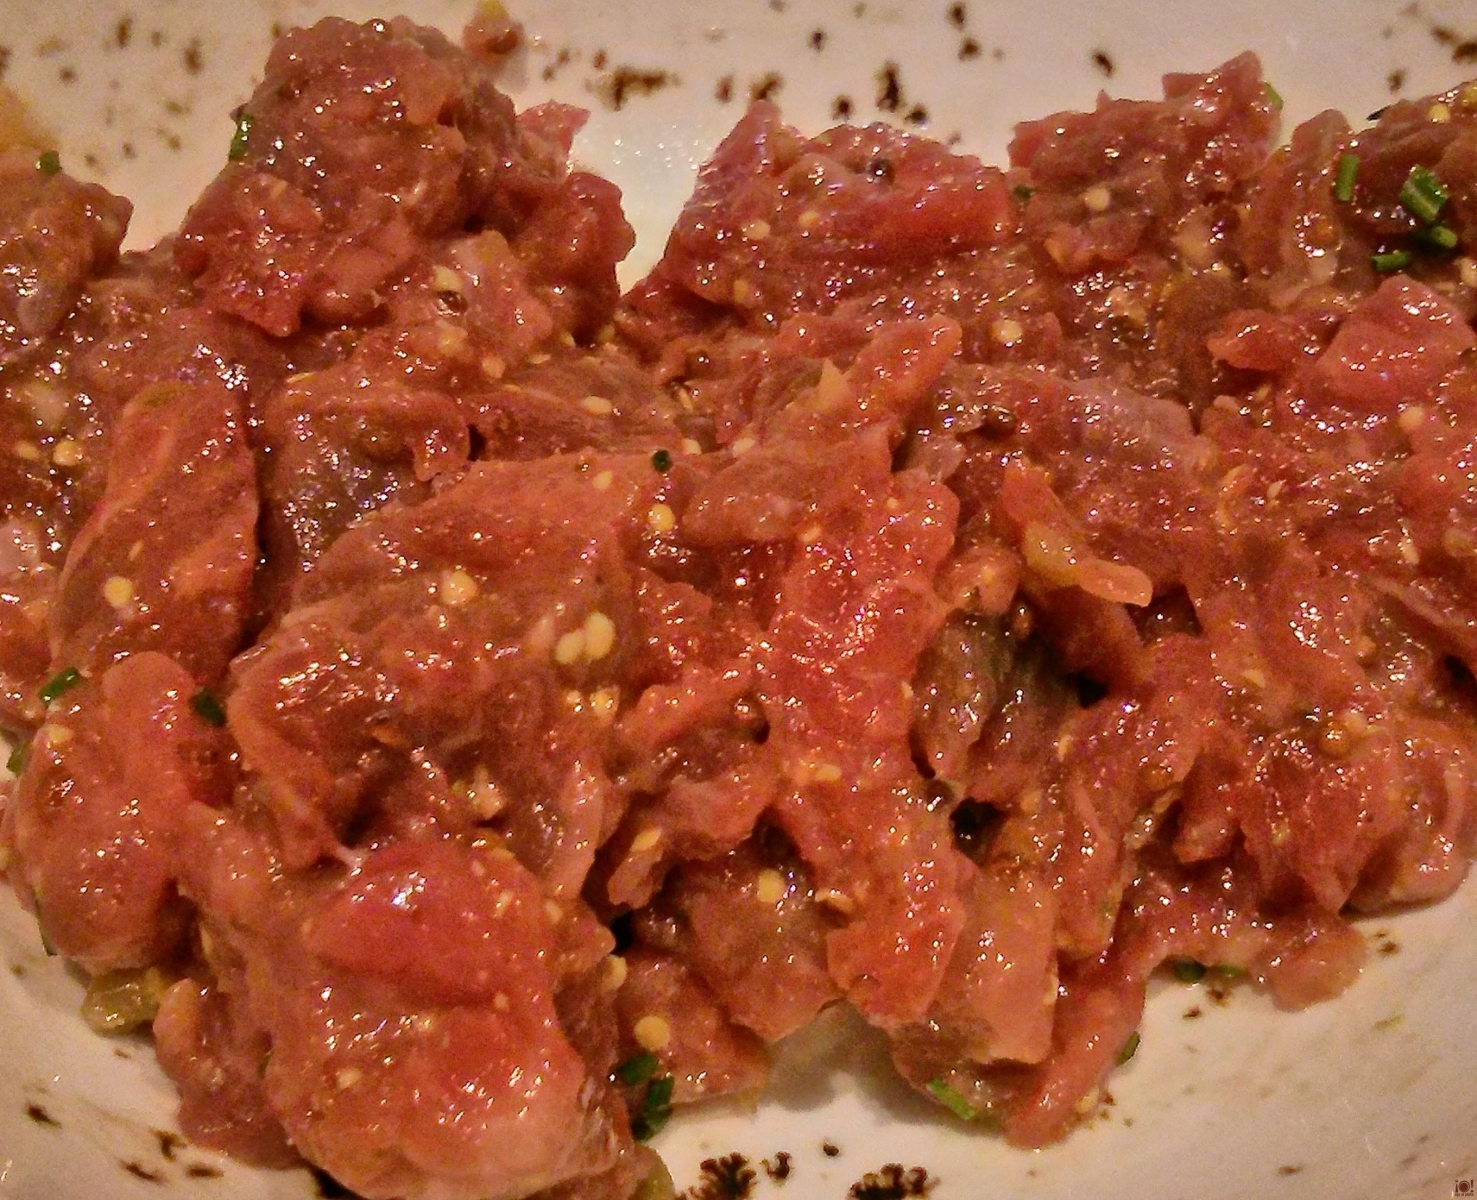 04_steak-tartare